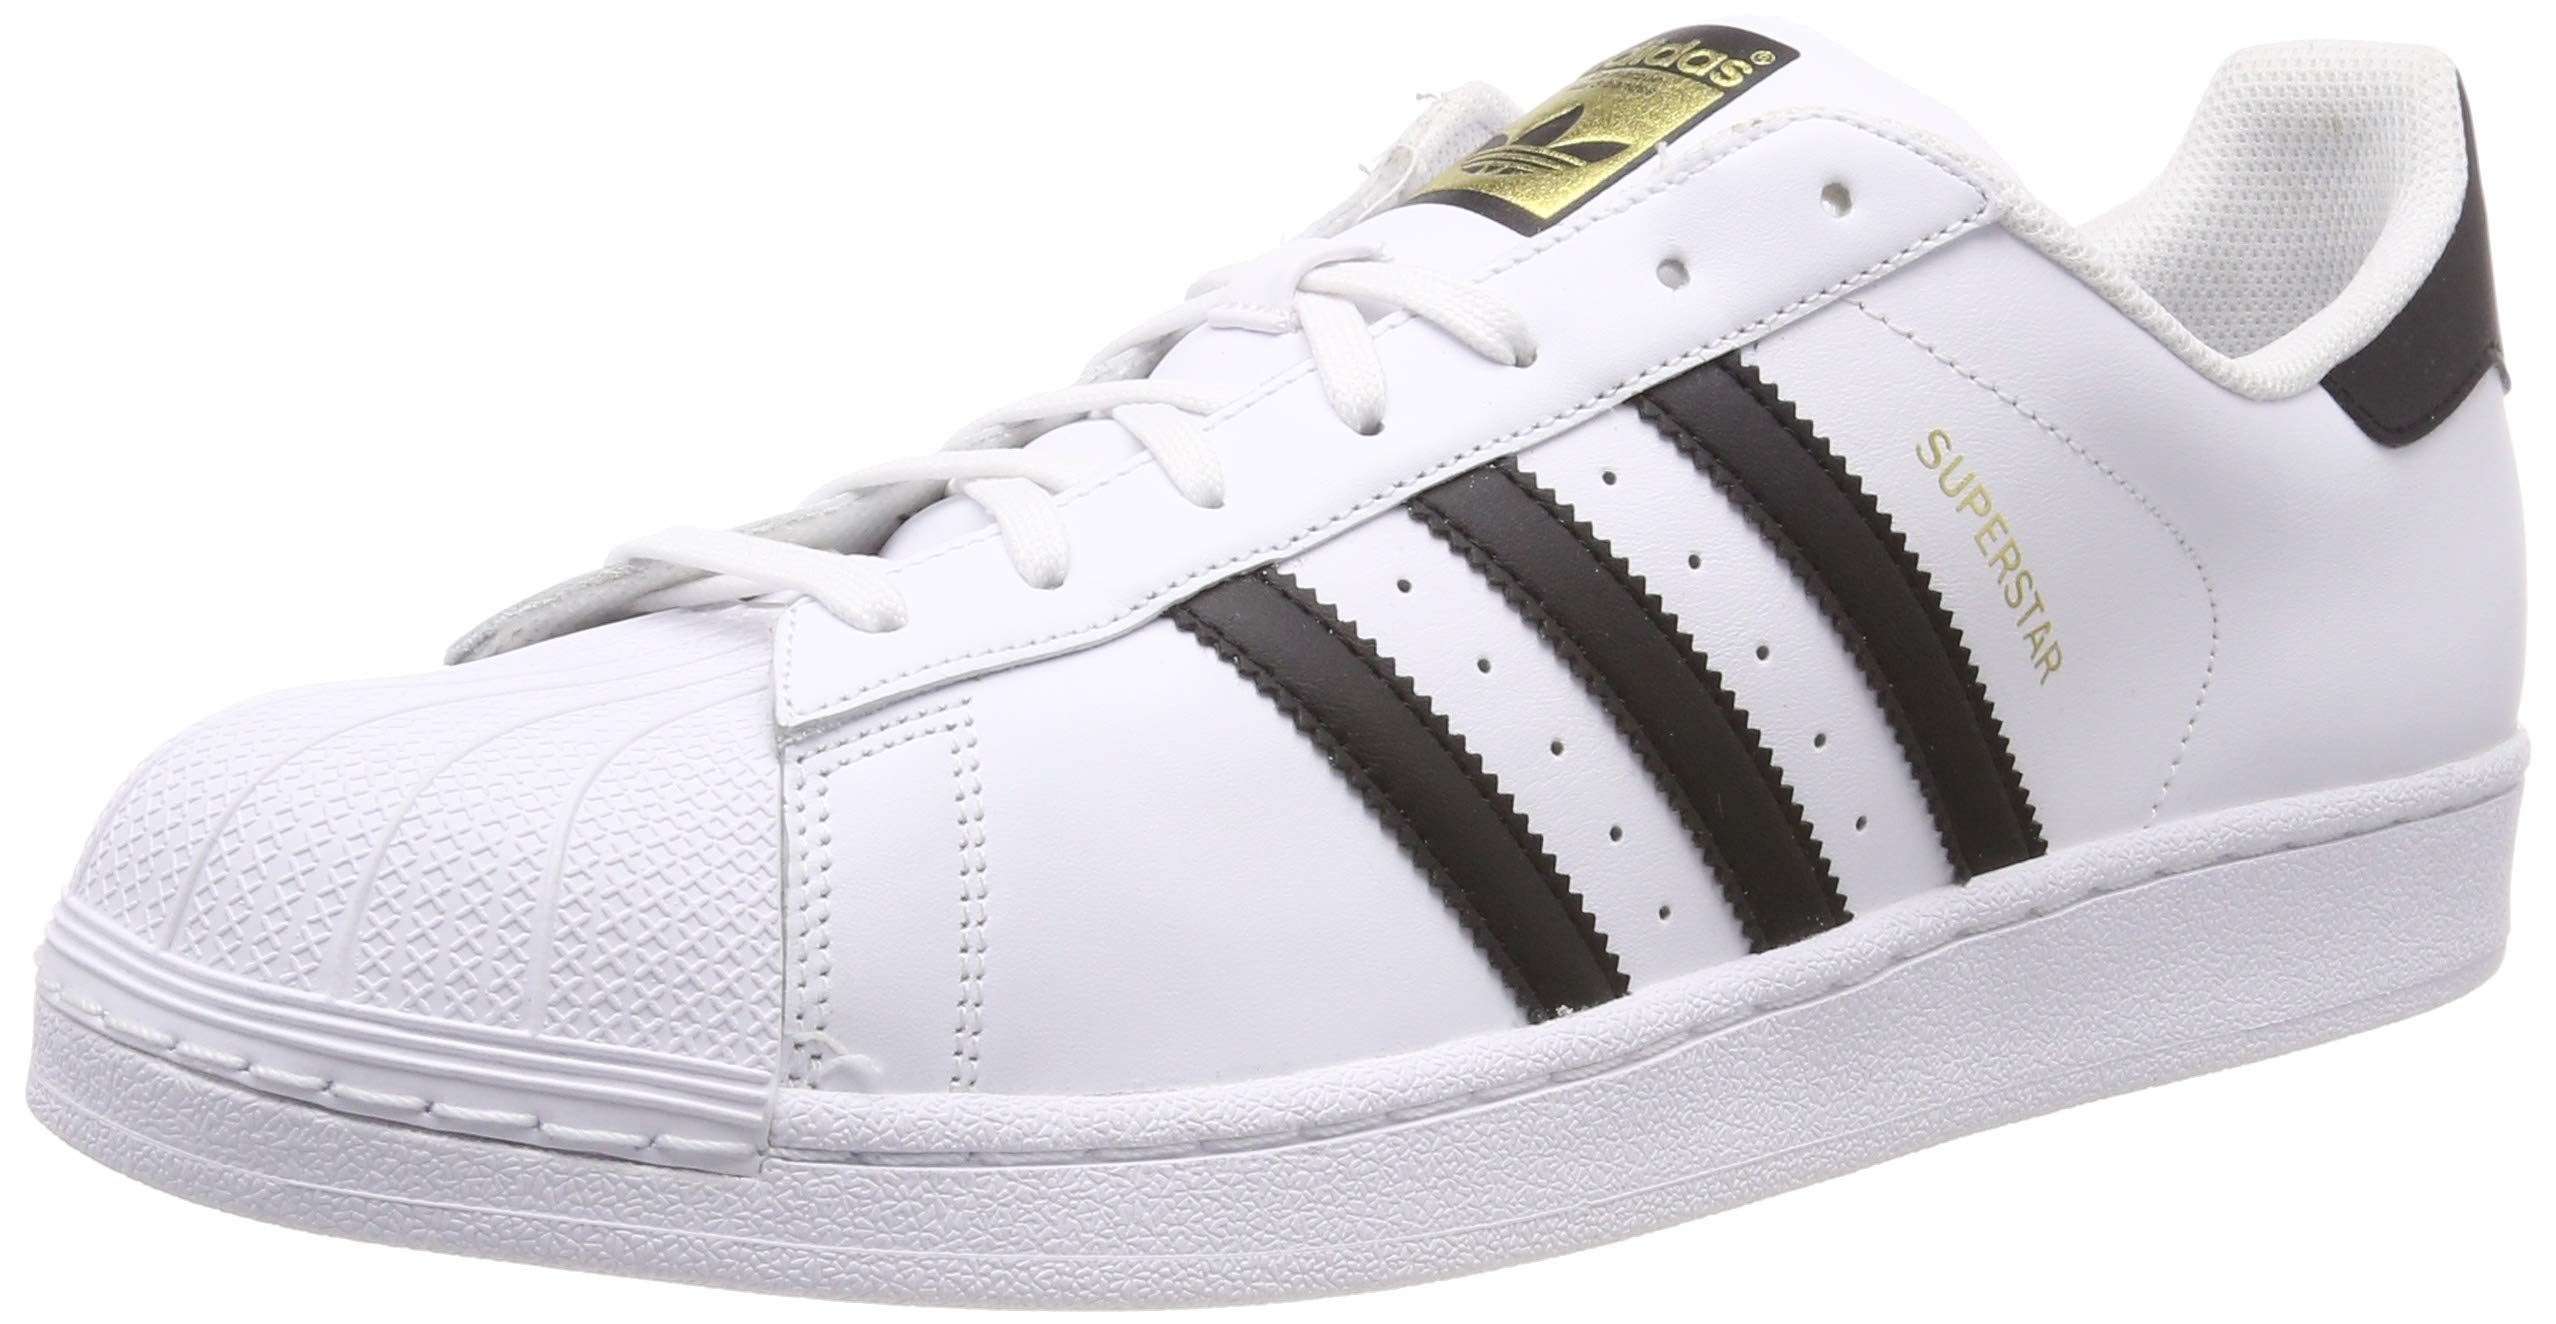 new product ca4bb c48c9 ADIDAS ORIGINALS SUPERSTAR C77124 bianco nero scarpe unisex pelle 44   Amazon.it  Libri